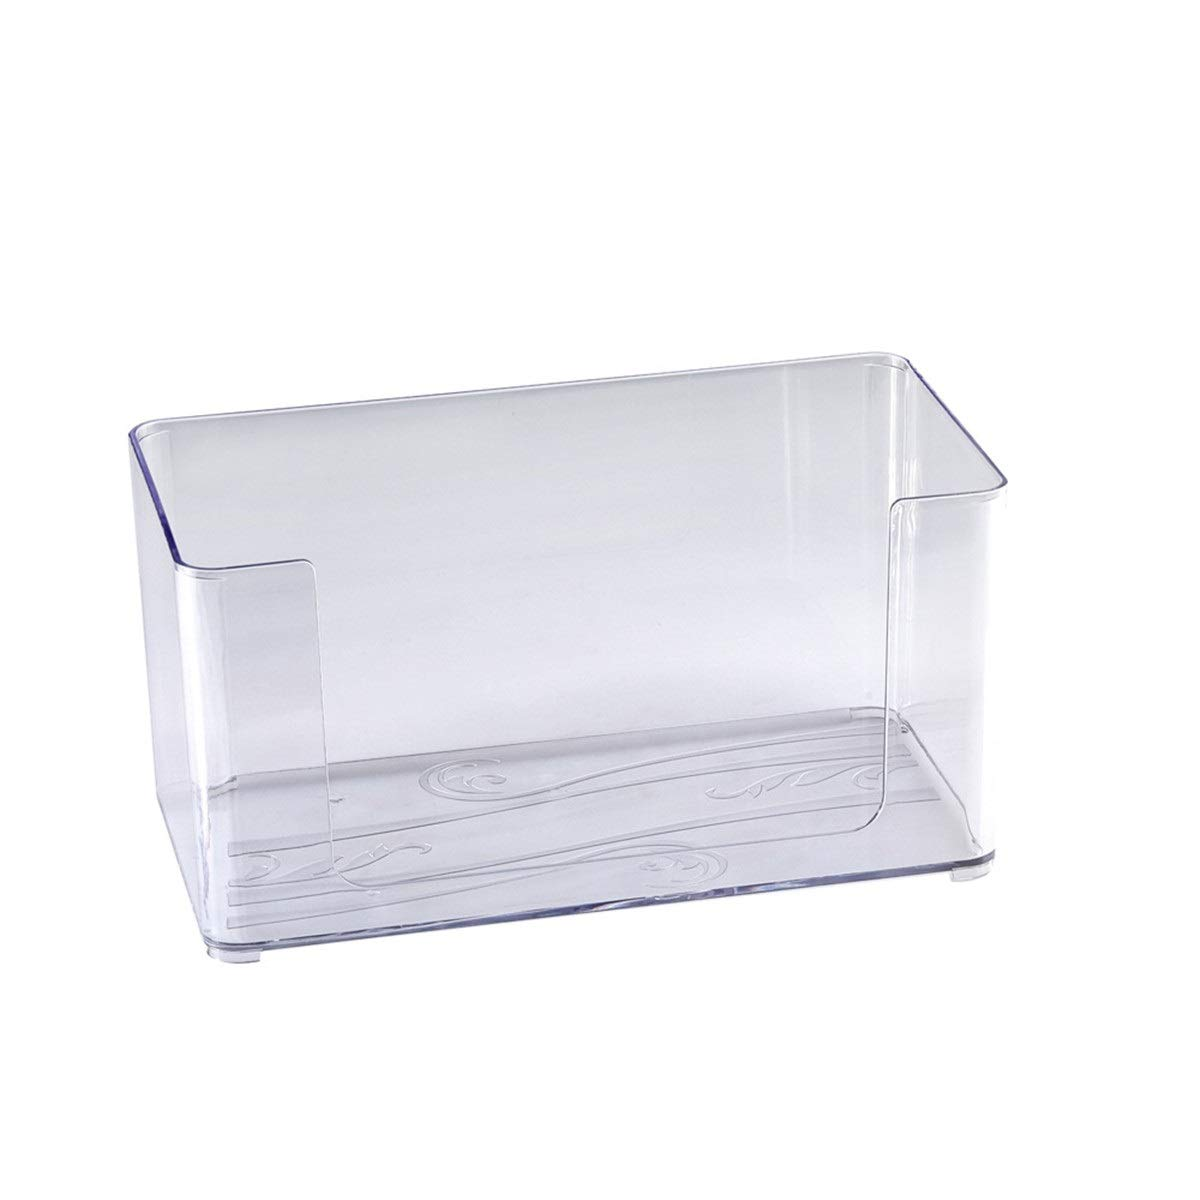 JIUYAODIANZI AS Anti-Slip Multi-Function Storage Box, Household Items Storage Storage Box, Transparent Plastic Storage Box, Suitable for Kitchen, Bathroom, Living Room by JIUYAODIANZI